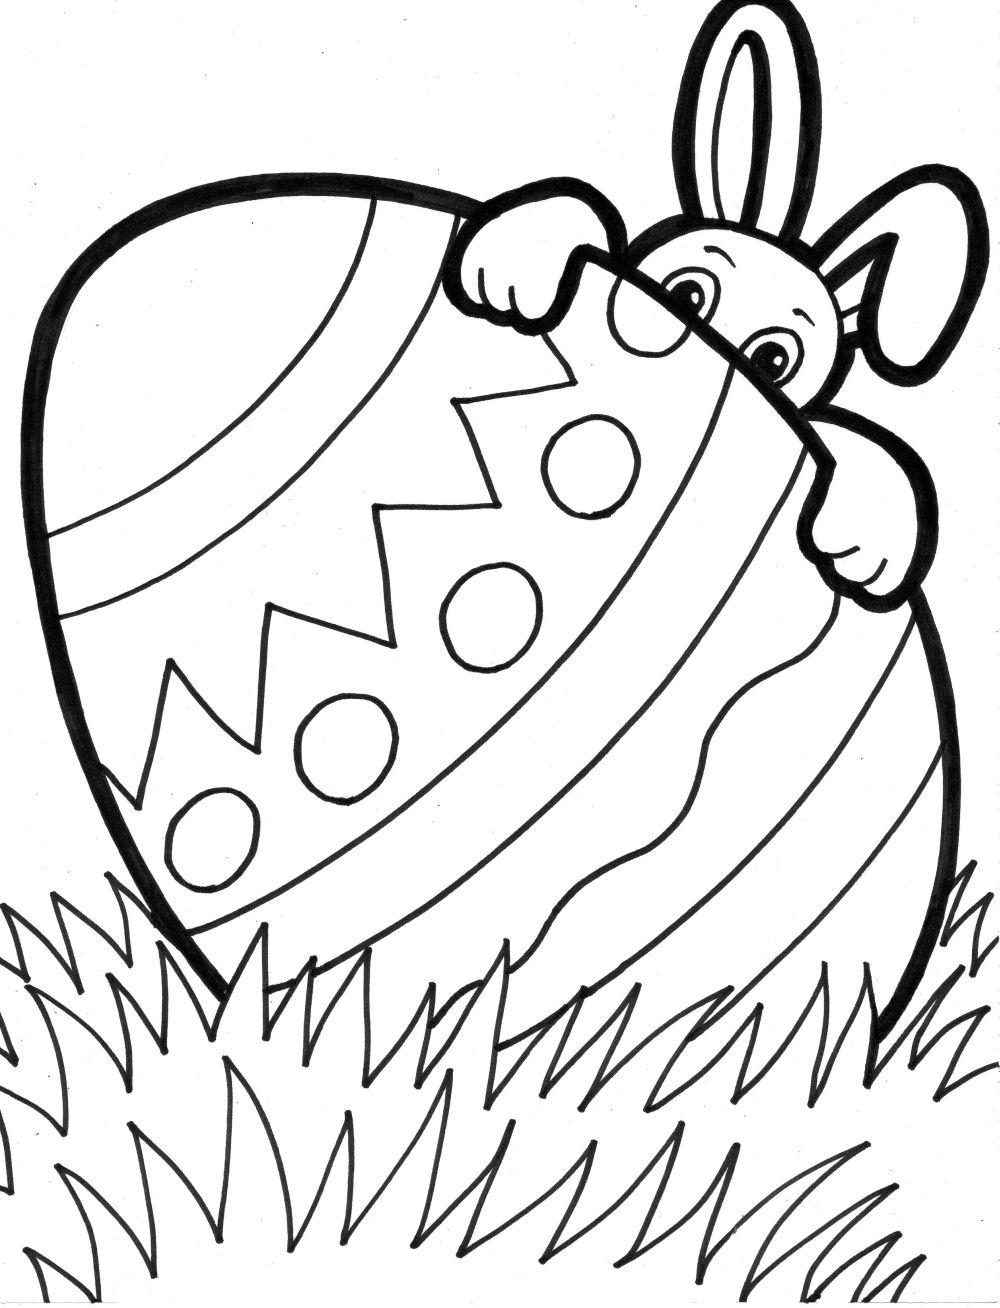 easter colouring pics free printable easter egg coloring pages for kids colouring easter pics